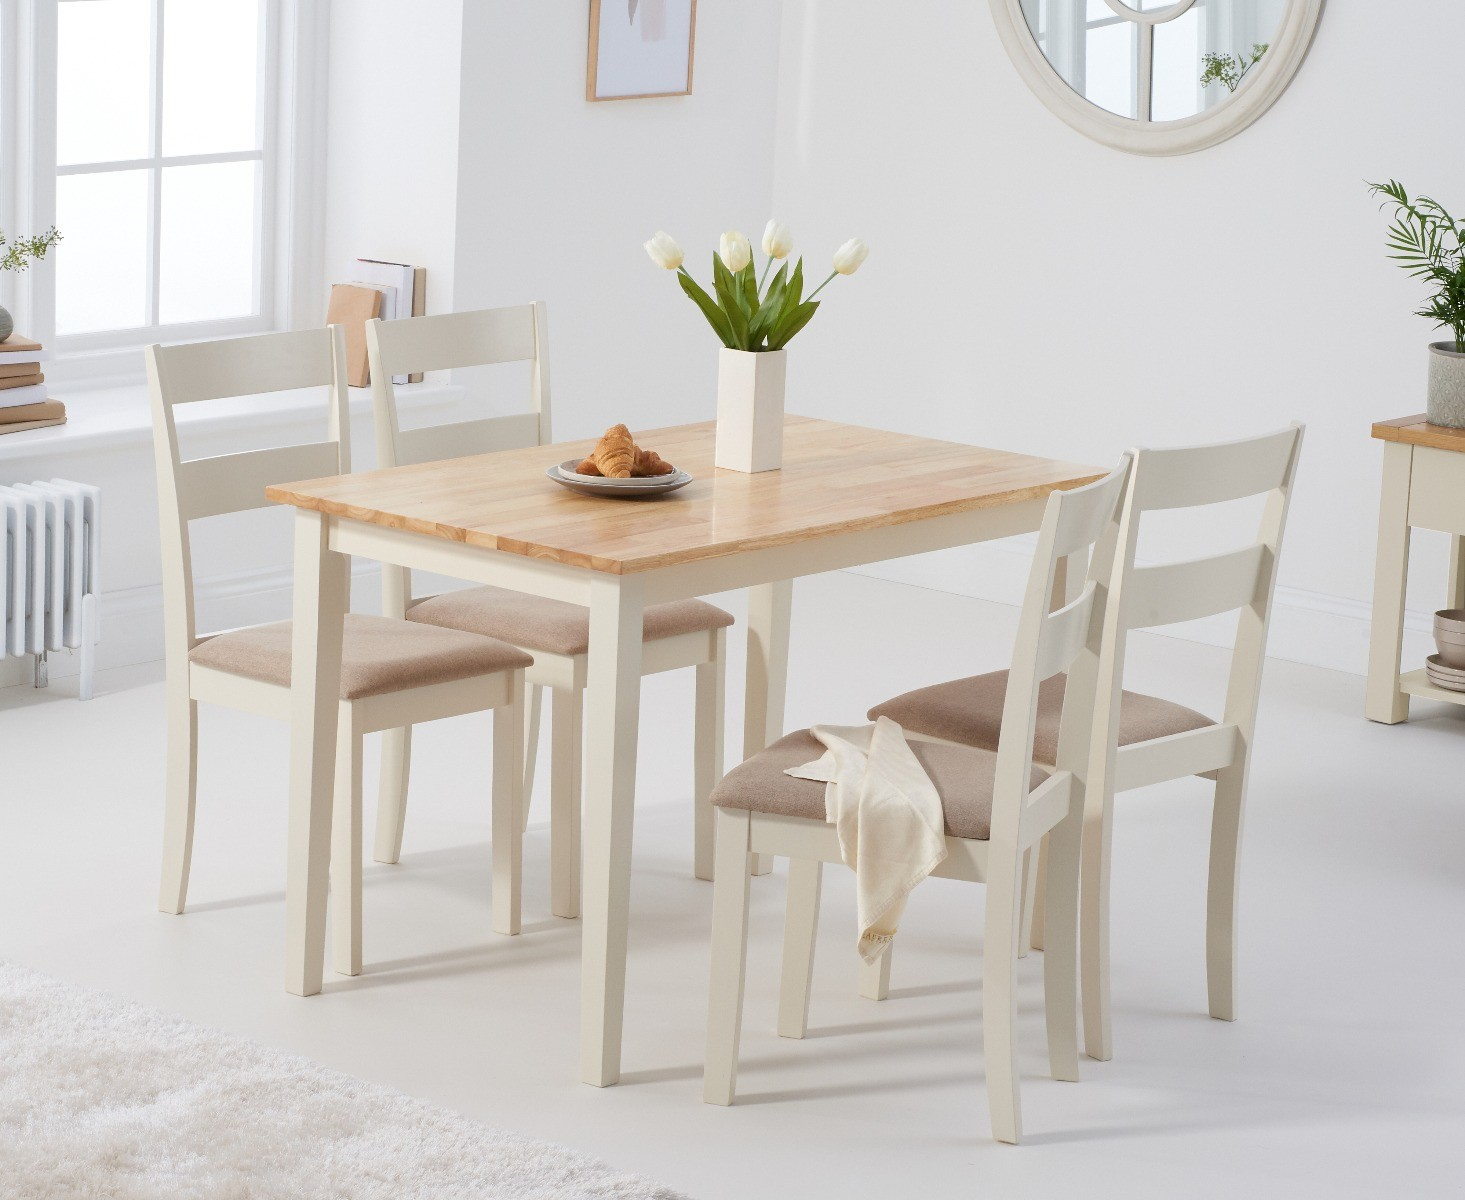 An image of Chiltern 114cm Oak and Cream Table with Chiltern Chairs with Cream Fabric Seats ...